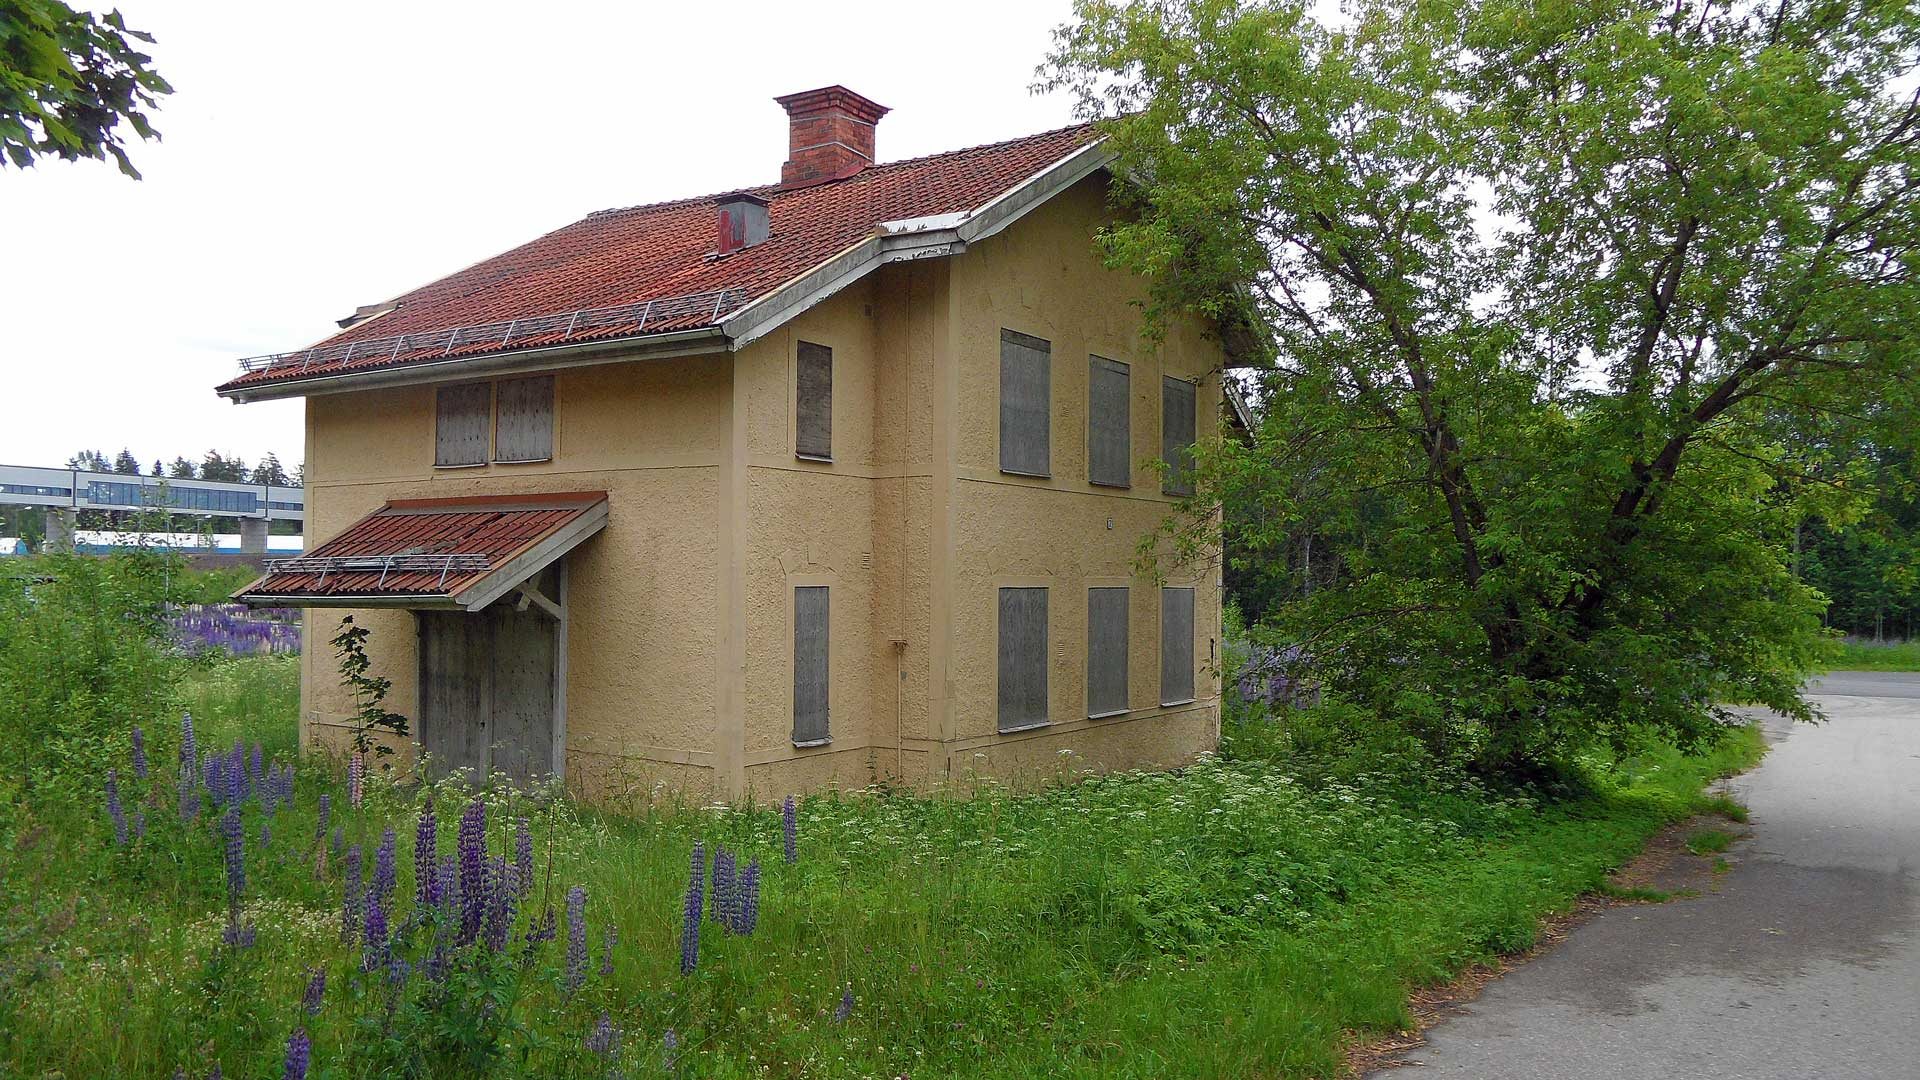 miners-abandoned-houses-2